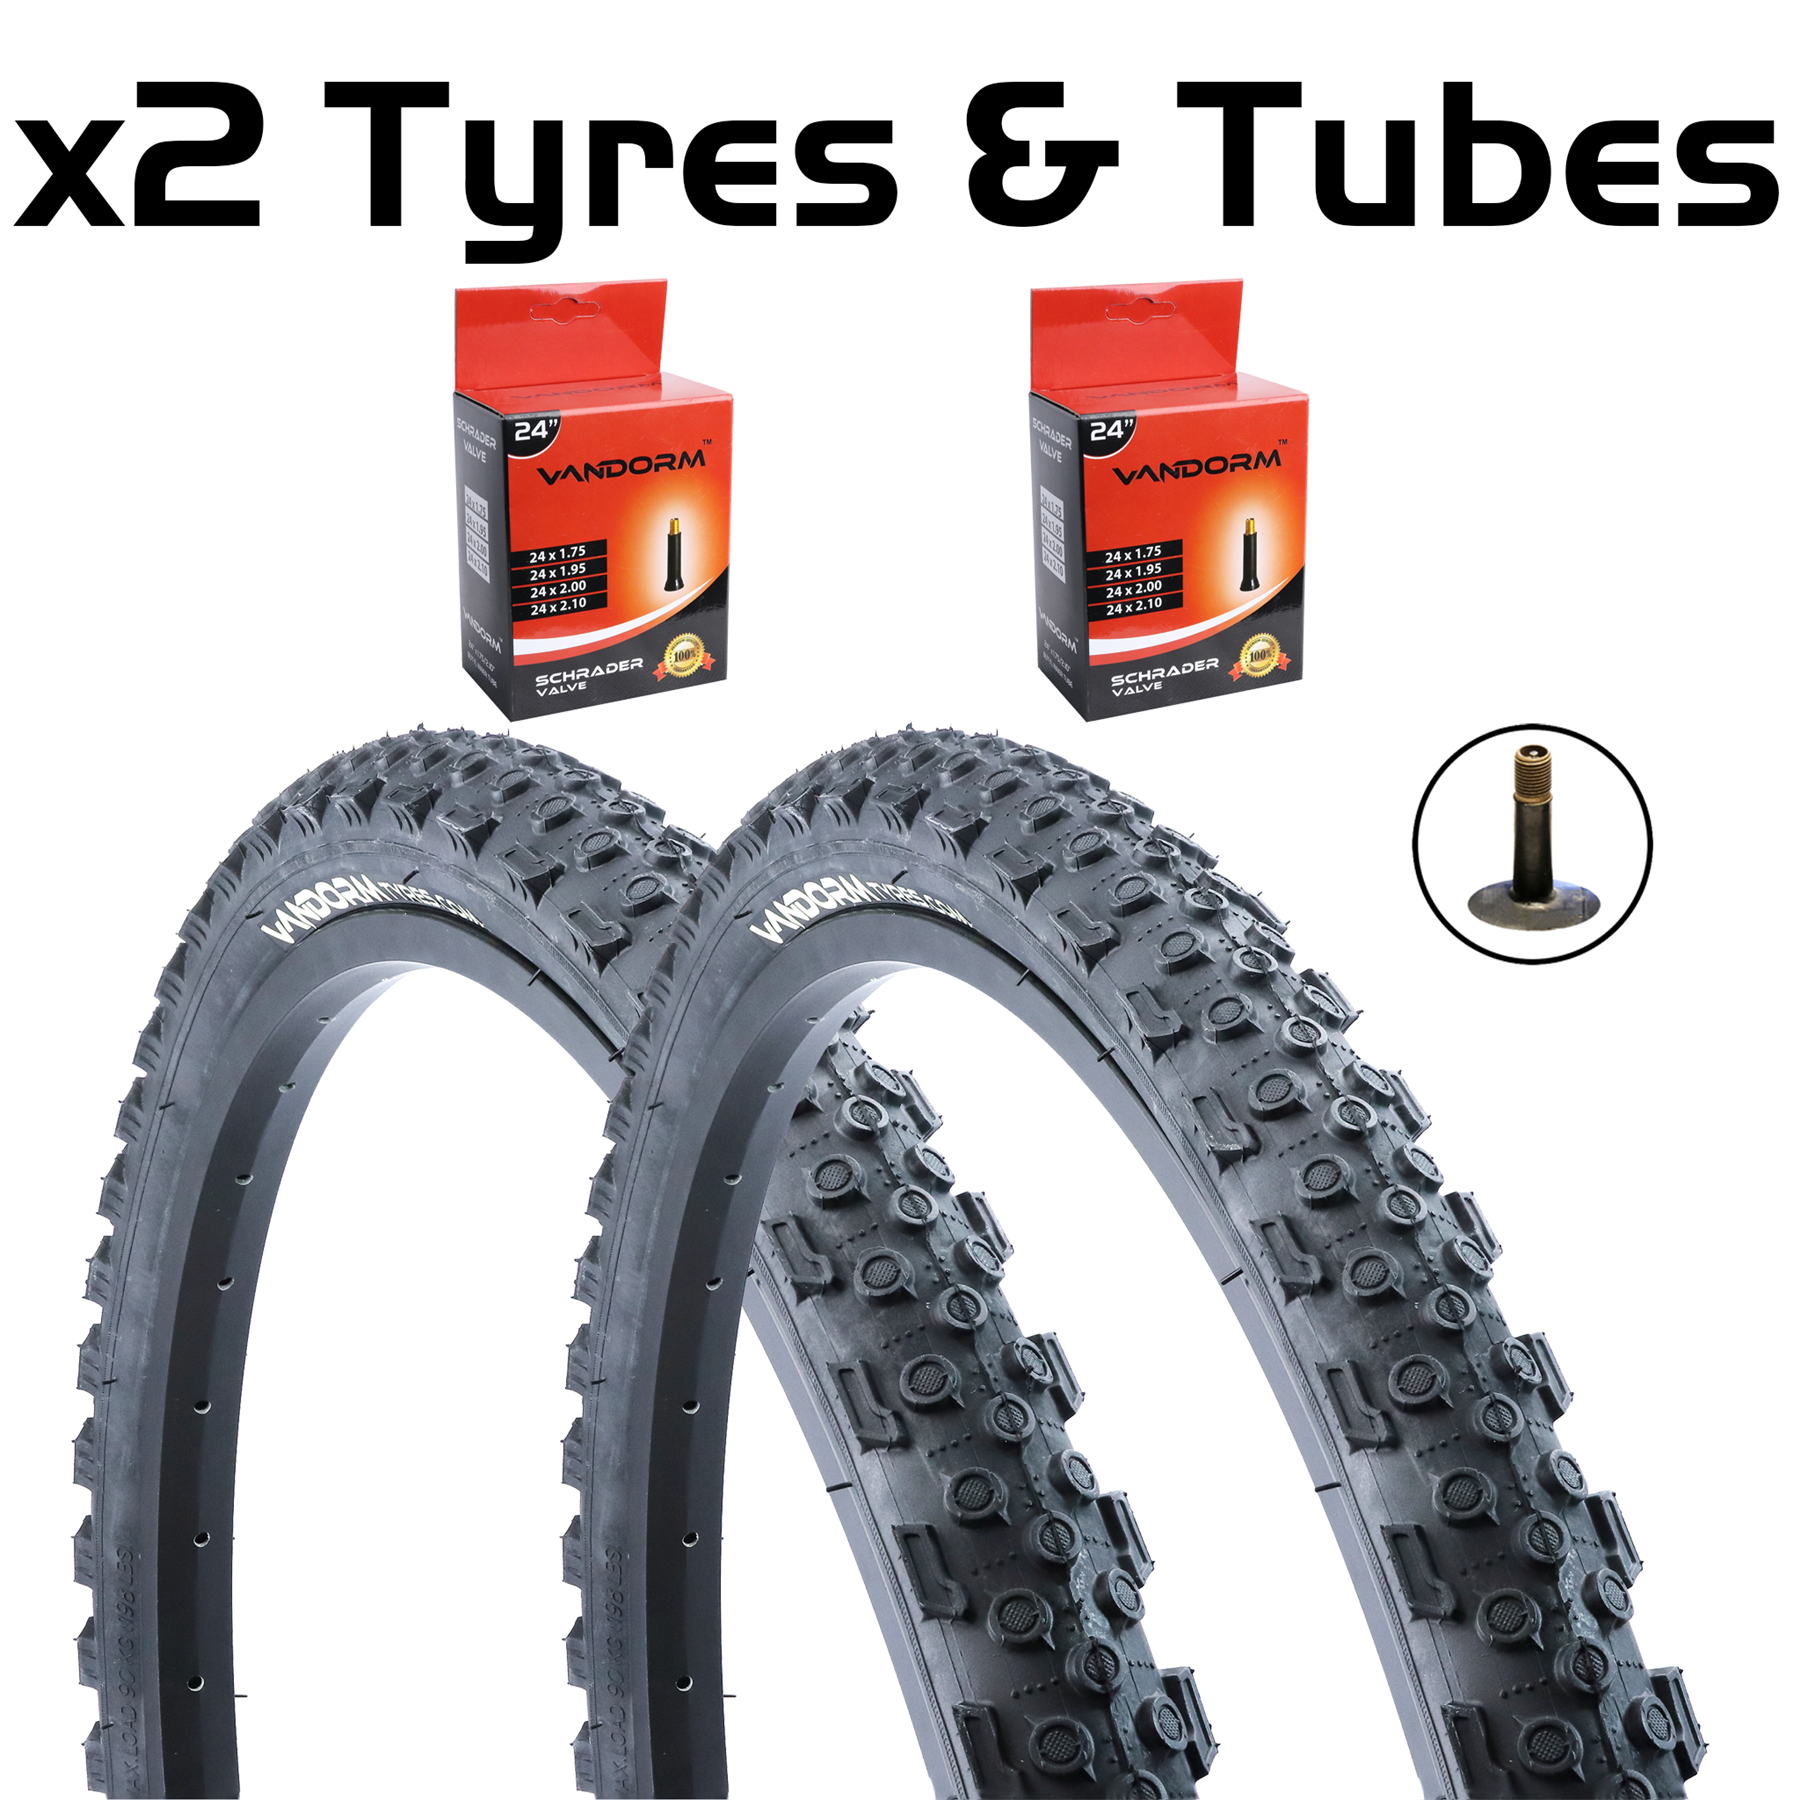 """Lot of 40 Bicycle Bike Cycle Tube 24/"""" x 1.75-1.95 Inner Tubes 24 inch NEW"""